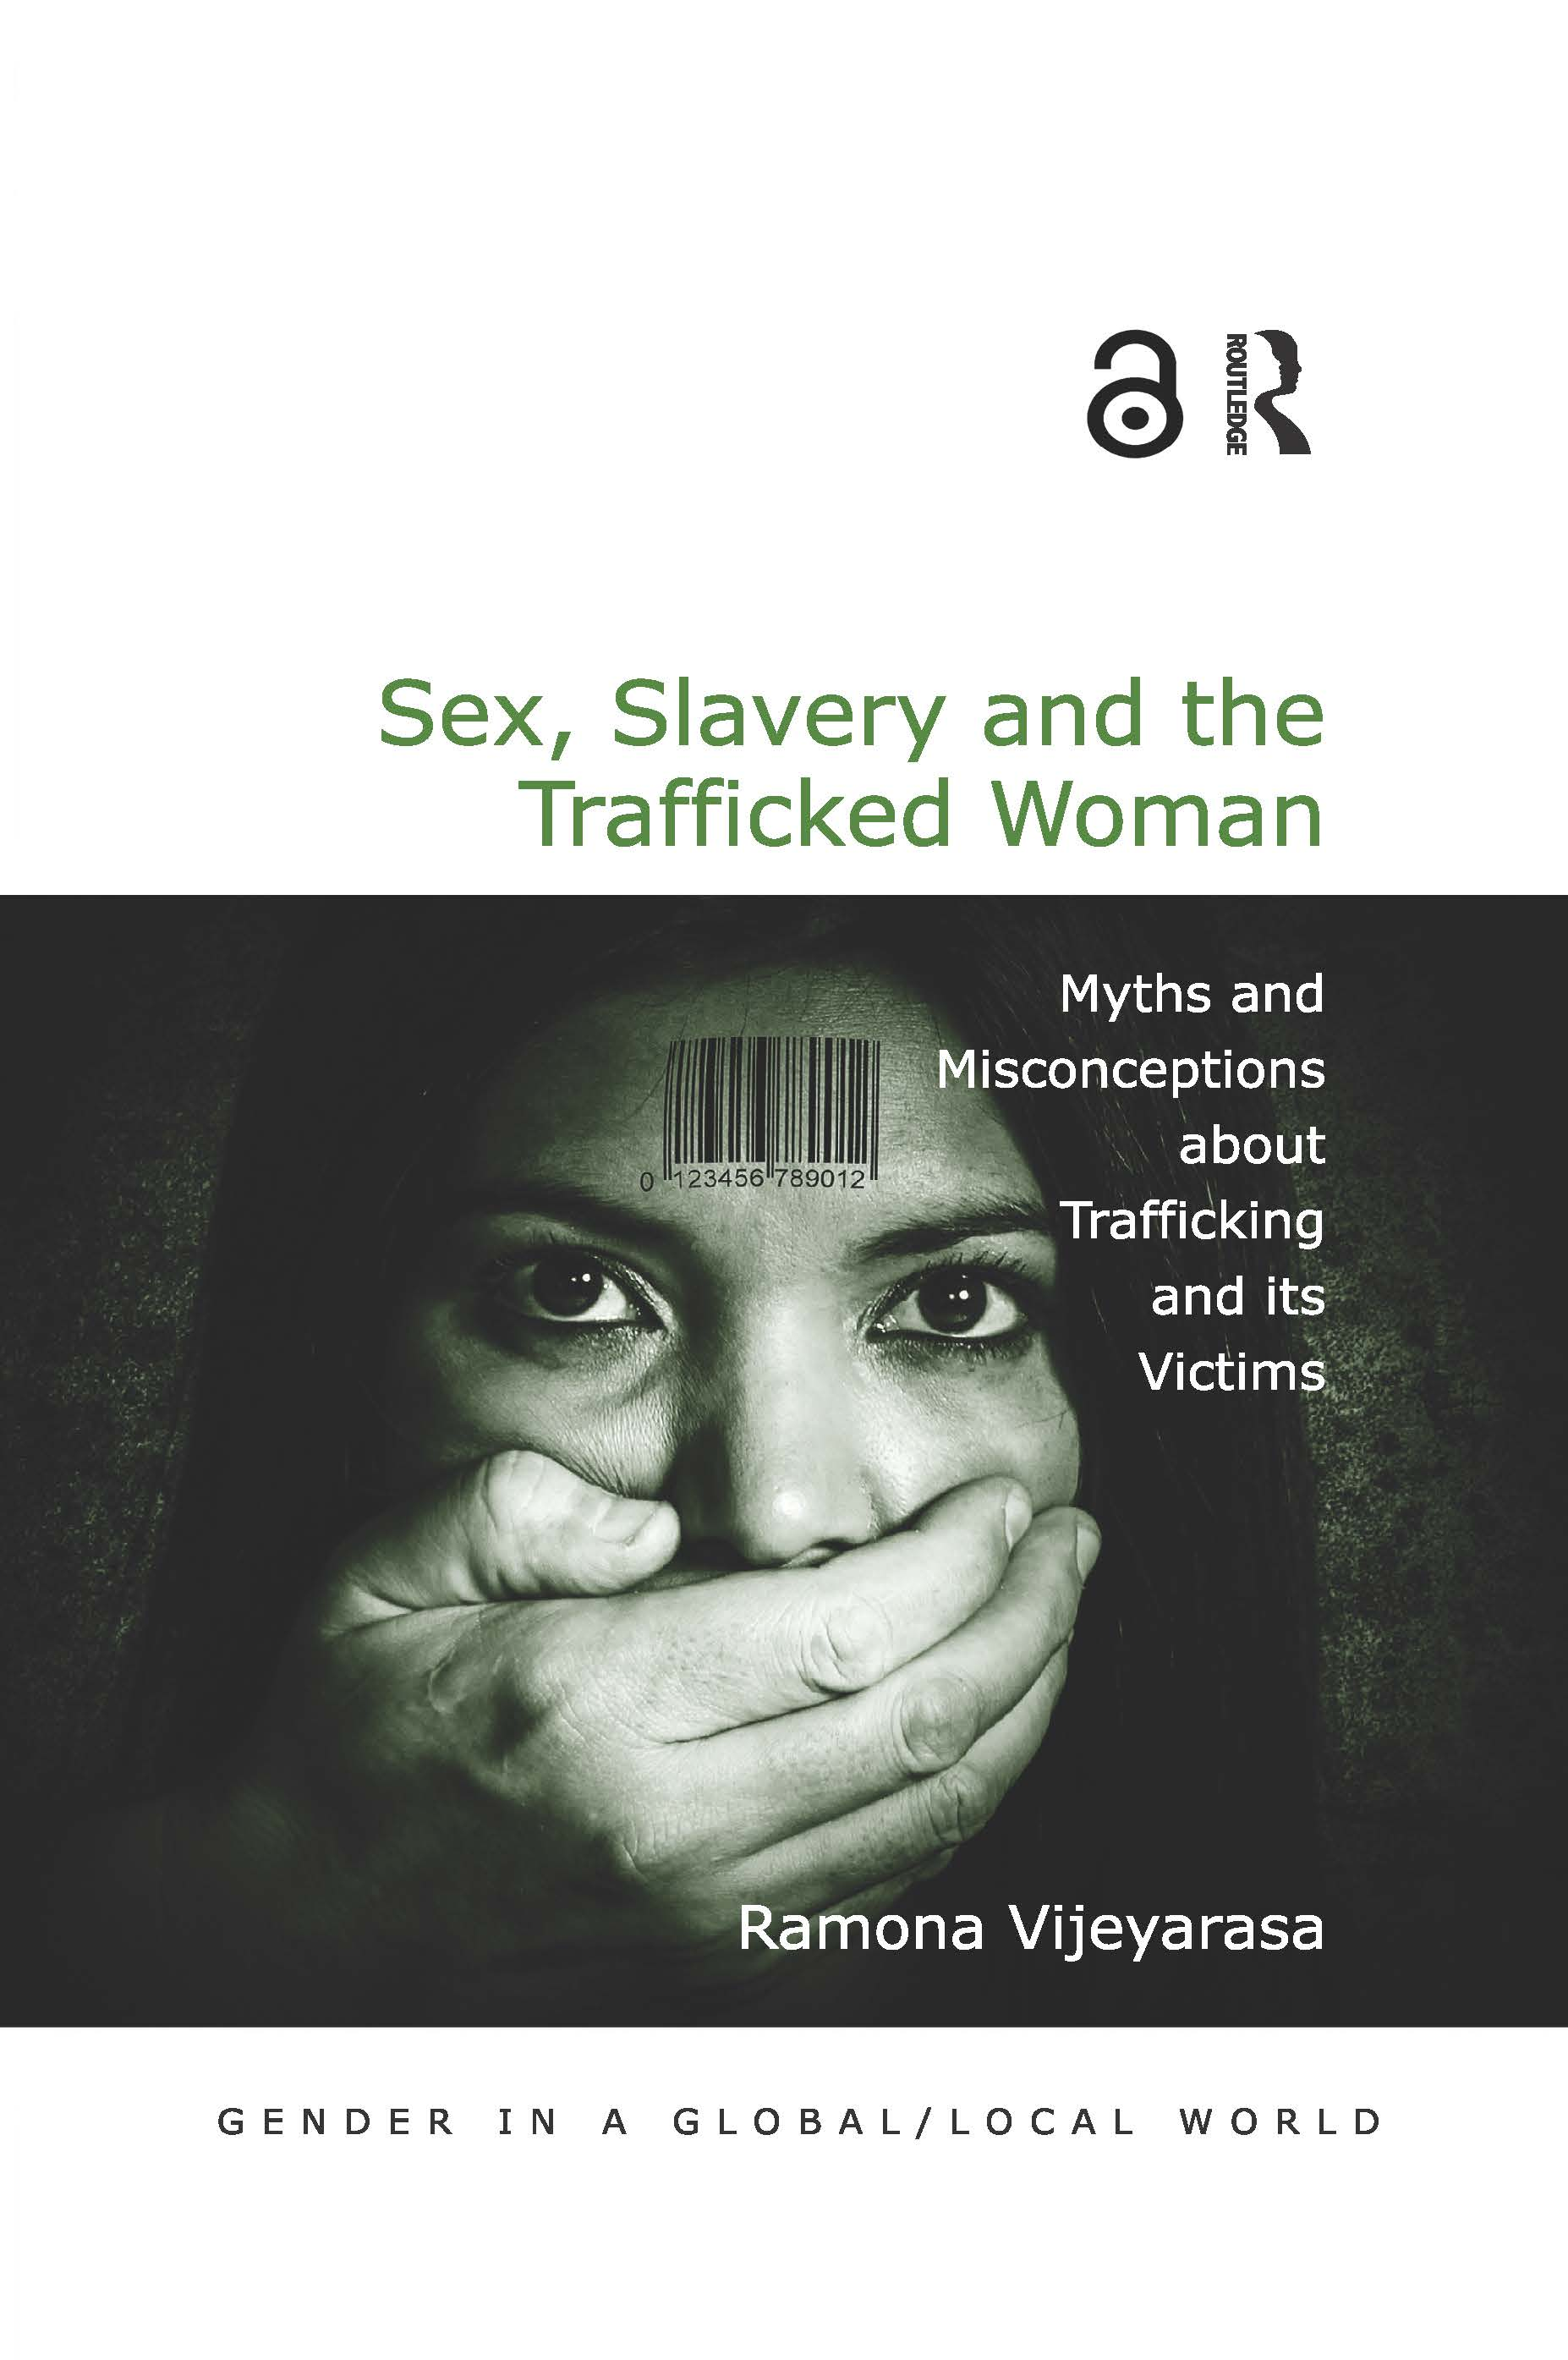 Sex, Slavery and the Trafficked Woman